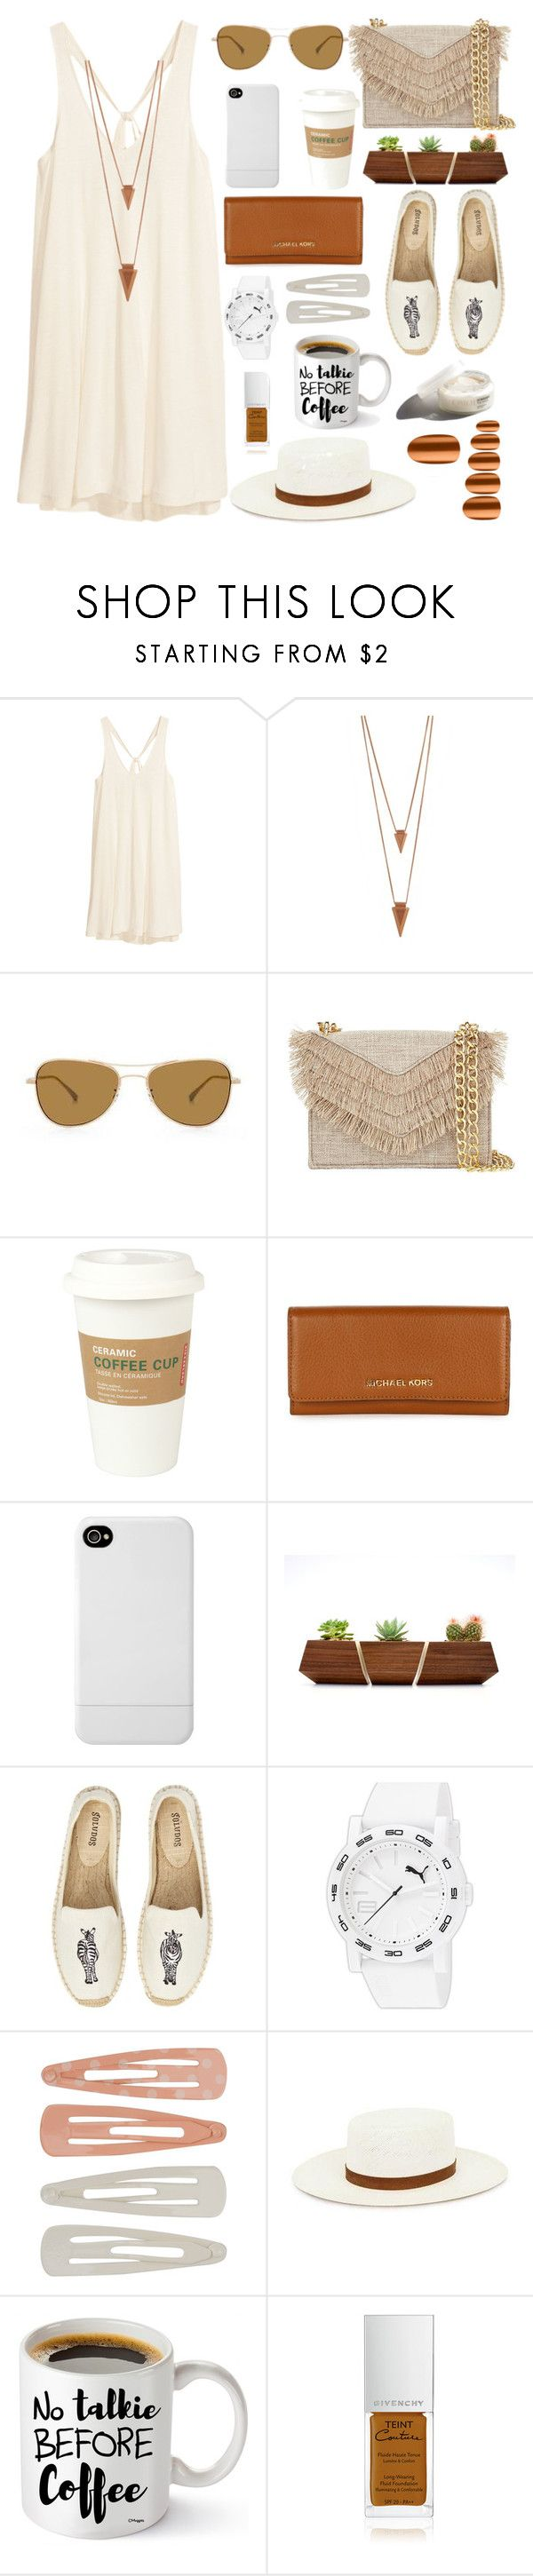 """""""Summer breeze"""" by lidia-solymosi ❤ liked on Polyvore featuring H&M, Jules Smith, Oliver Peoples, Cynthia Rowley, Kikkerland, Michael Kors, Incase, Soludos, Puma and Forever 21"""